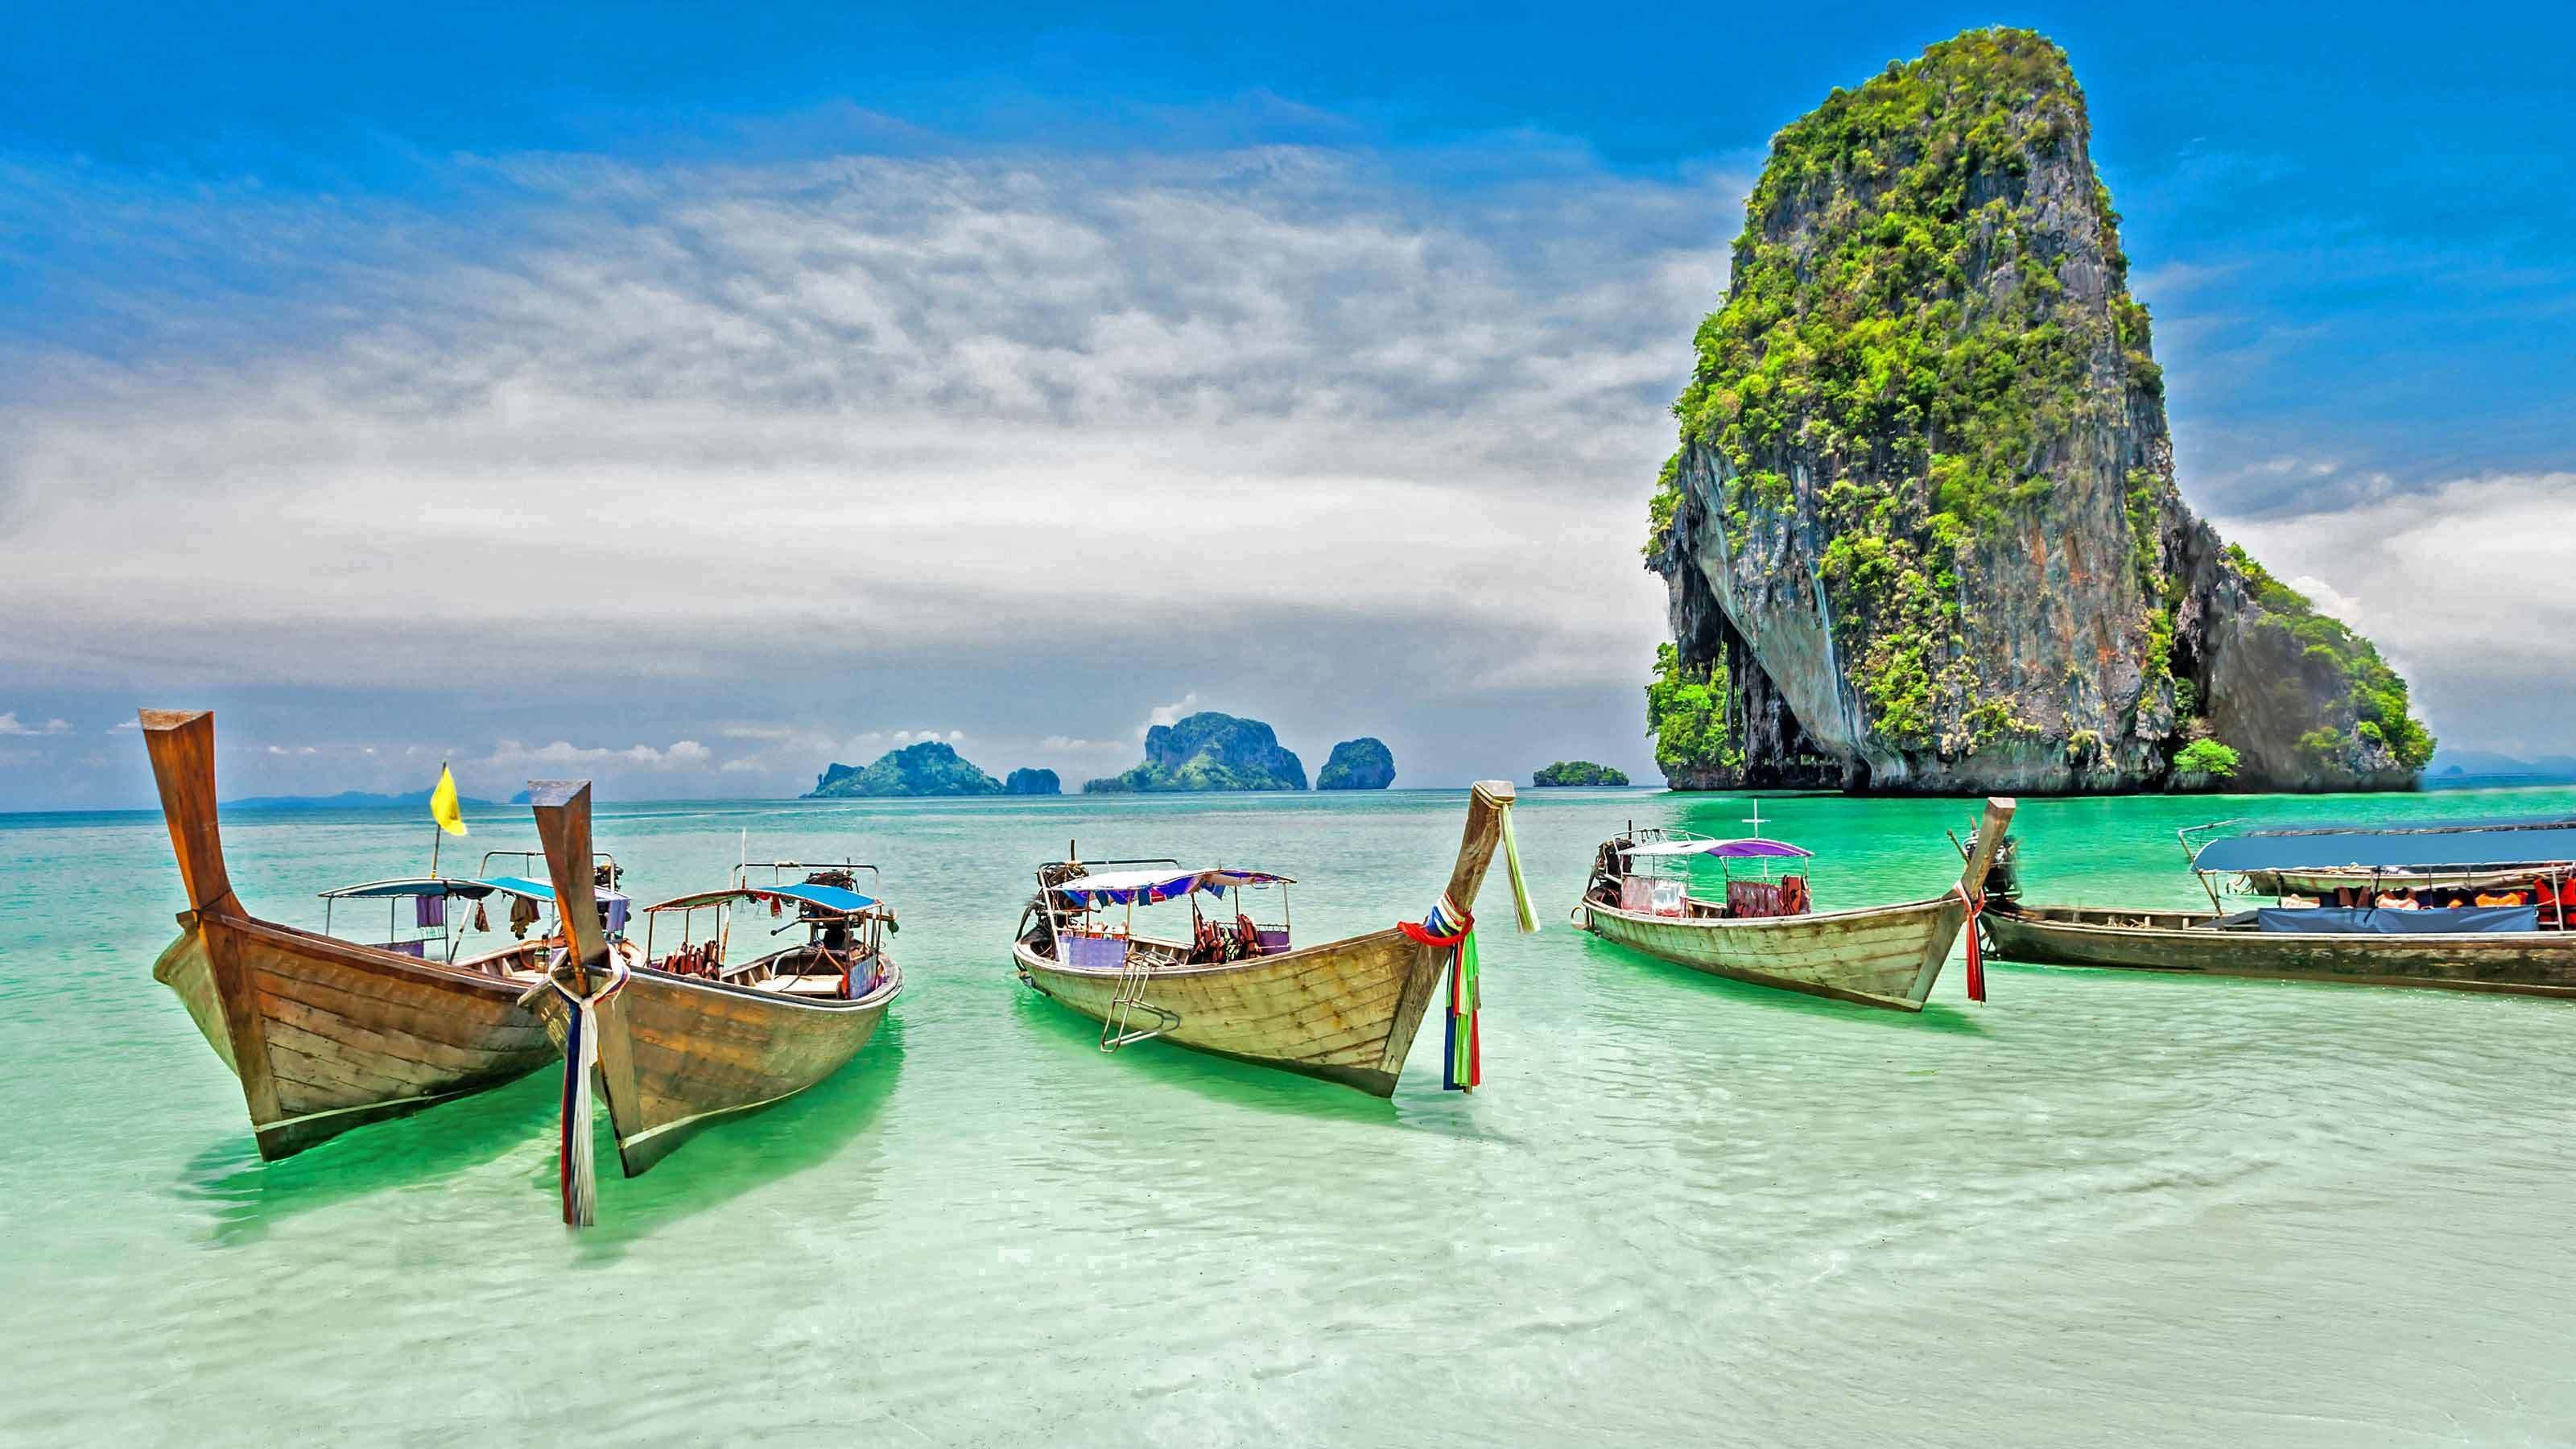 Phi Phi & Khai Nai Islands Deluxe Full-Day Tour by Speedboat